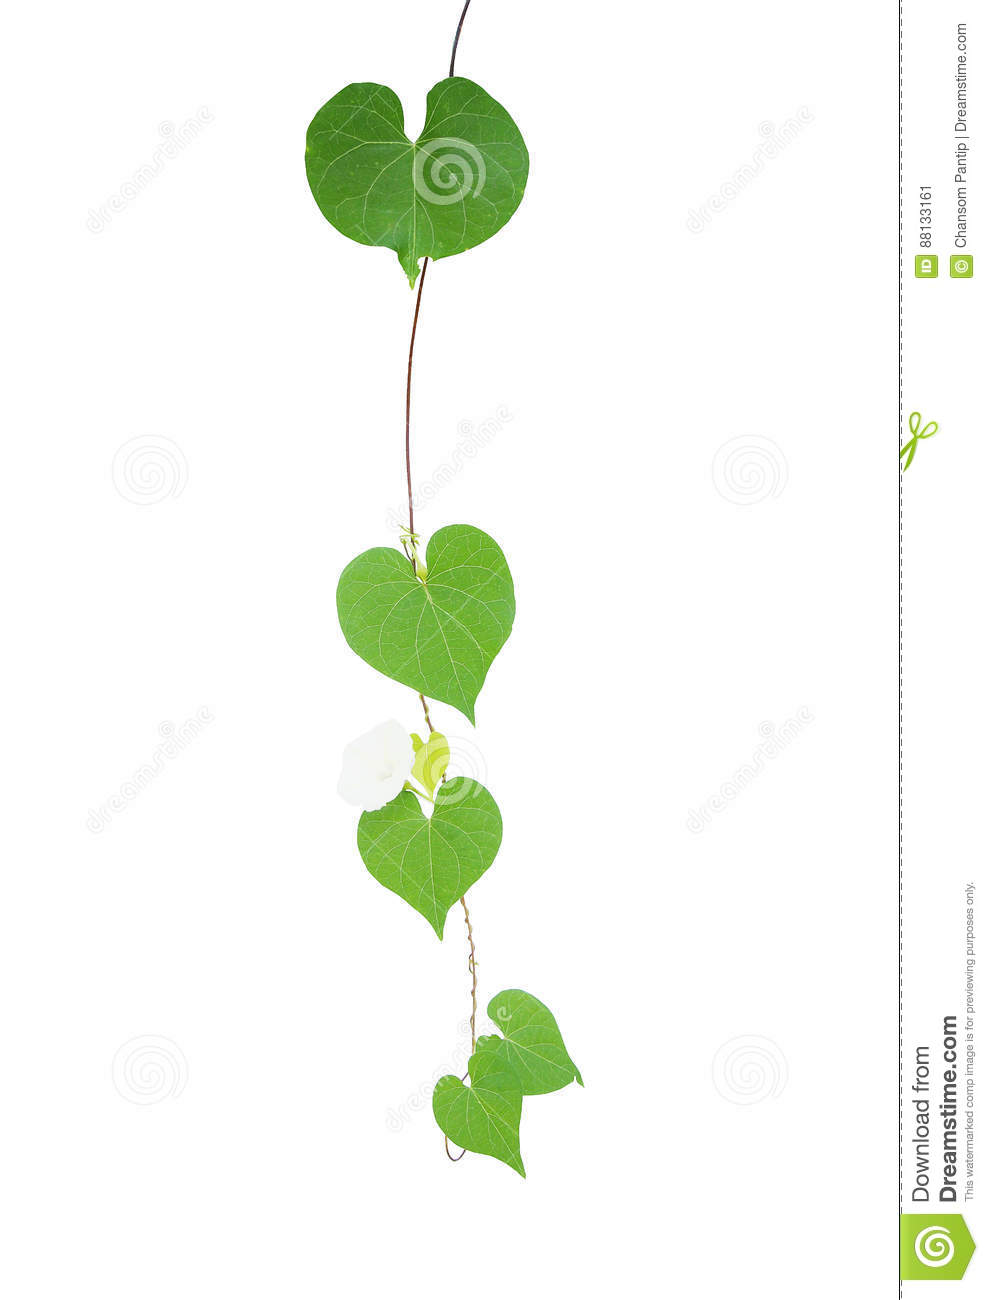 Heart Shaped Greenery Leaves Tropical Wild Vine With Tiny White